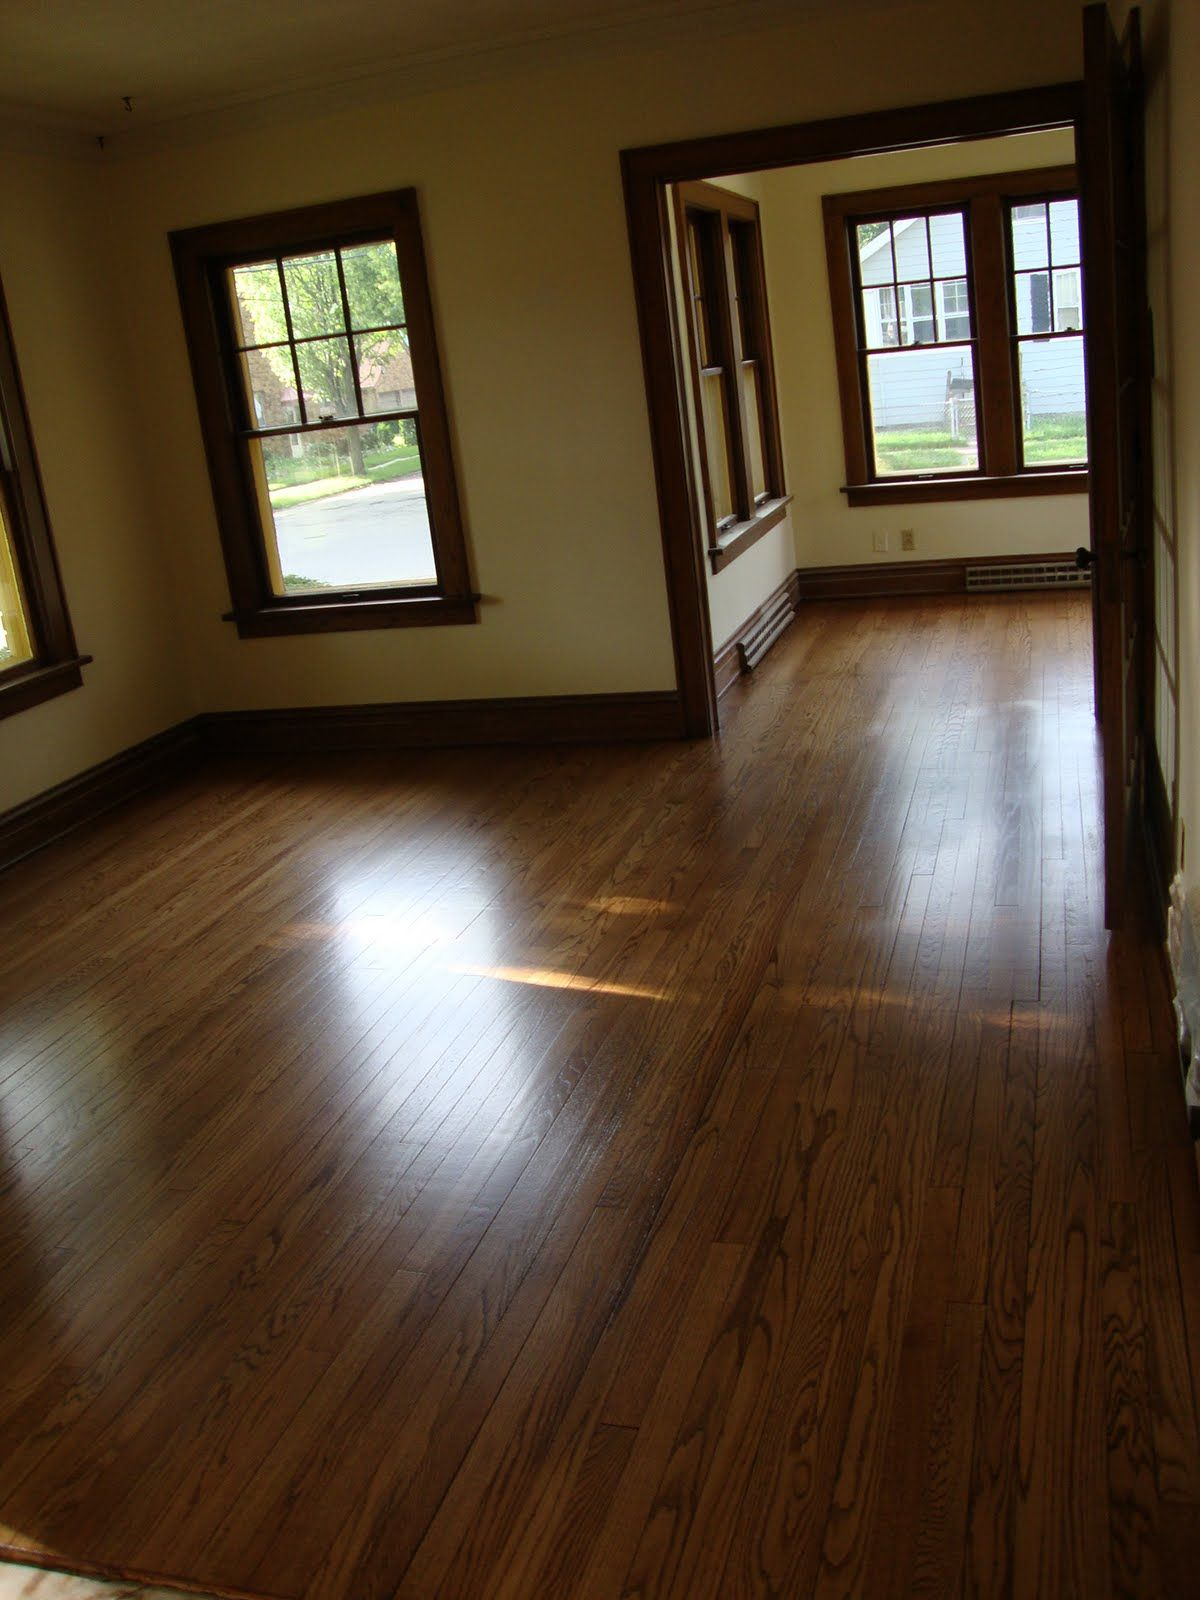 Dark Wood Trim With Hardwood Floors And Lighter Not Sterile White Walls I Hope This Is What